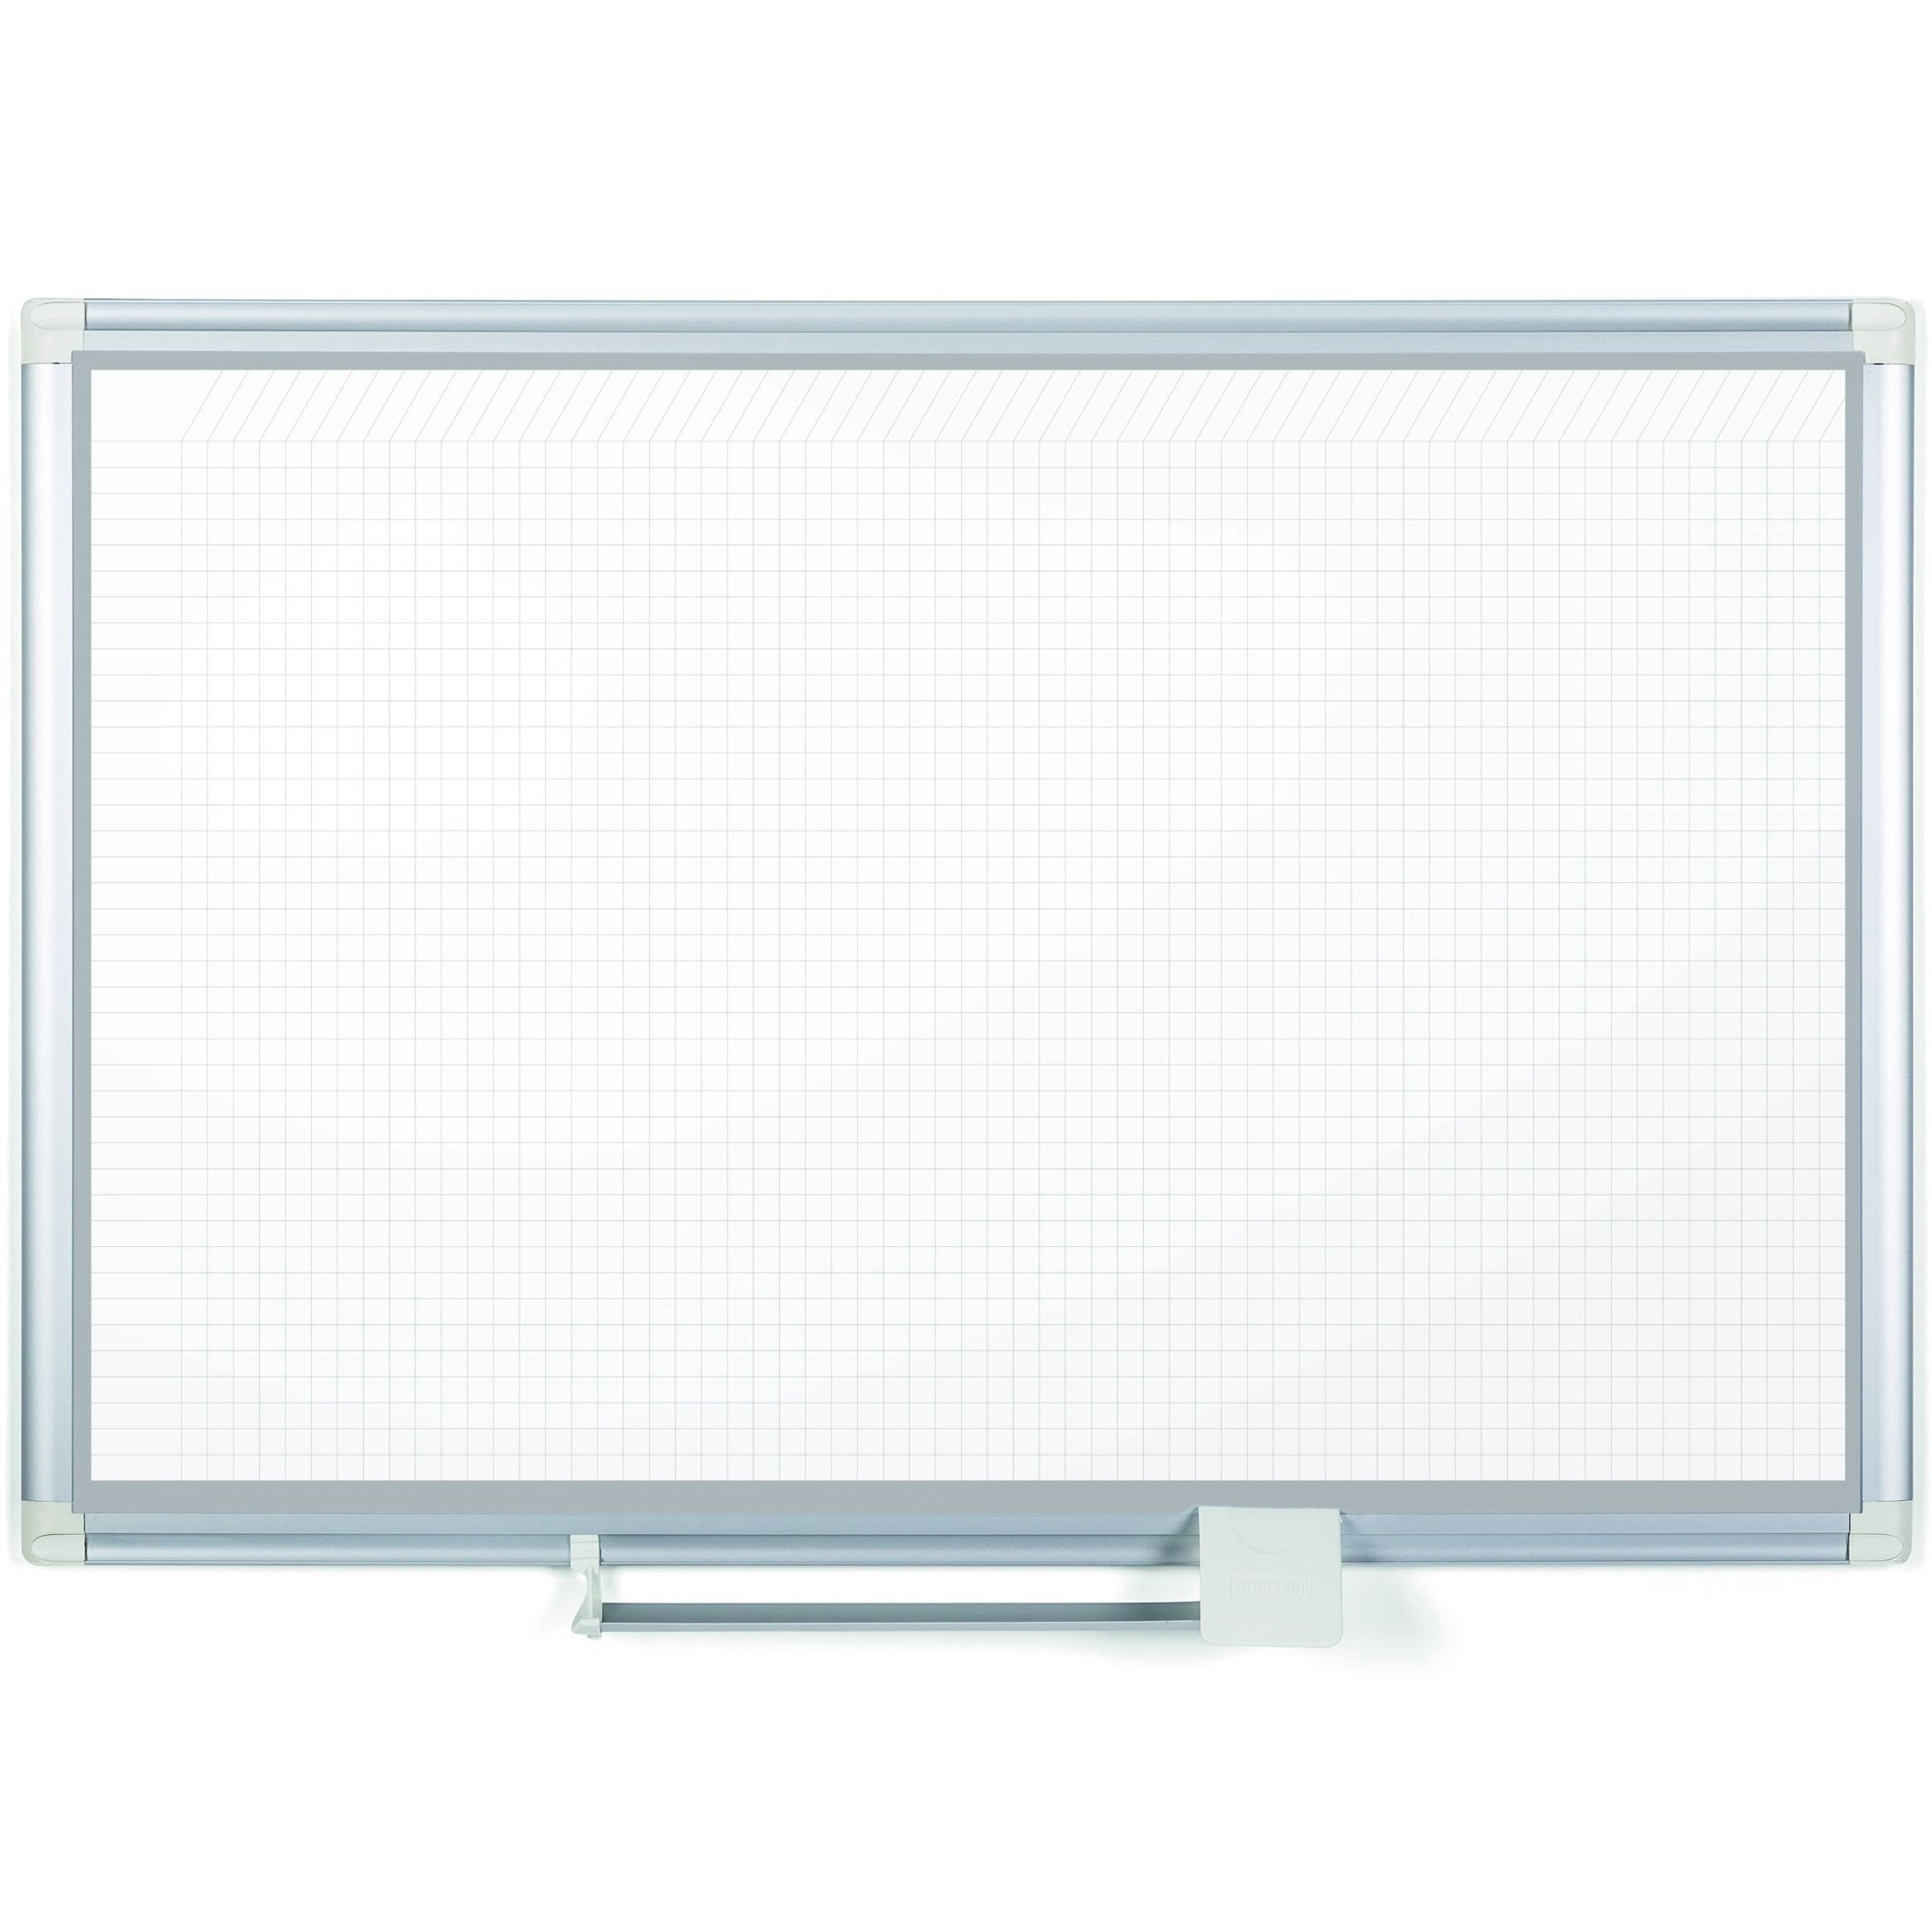 MasterVision Dry-erase Magnetic Planning Board - Pure White, Aluminum - Porcelain - 48